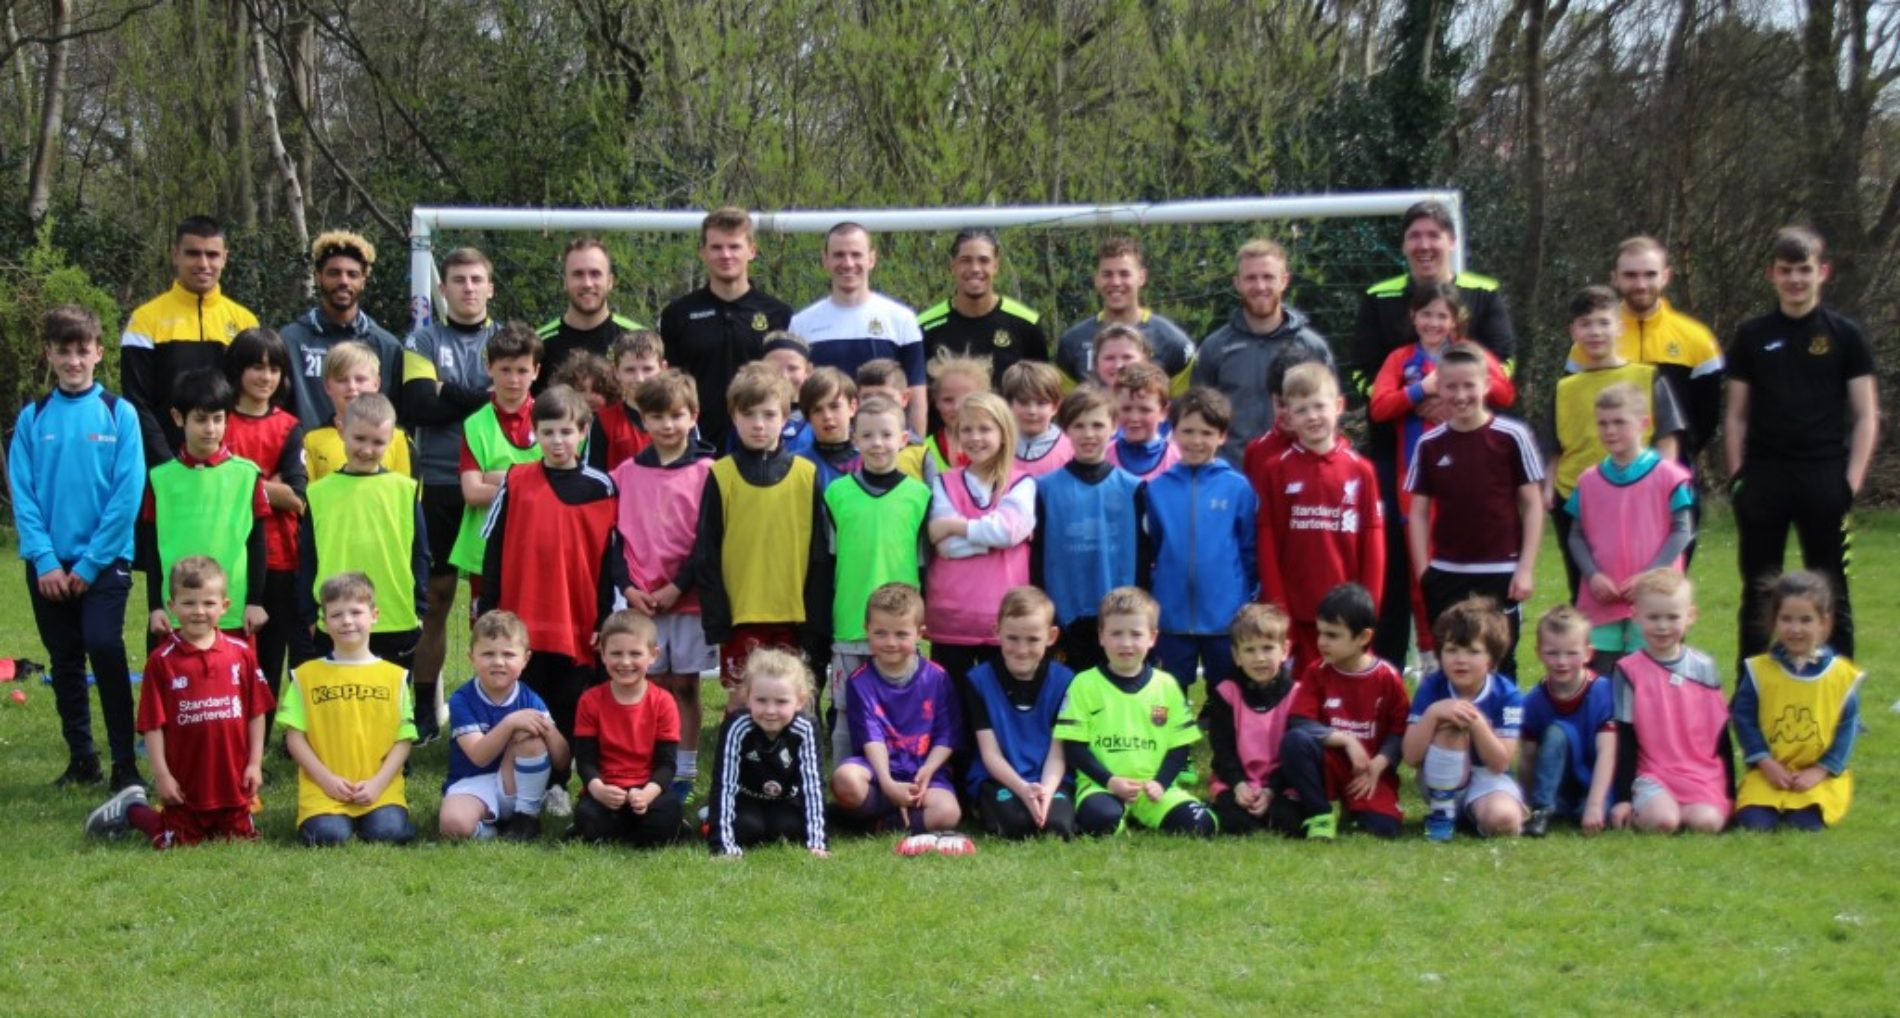 PHOTOS | Easter Holiday Fun